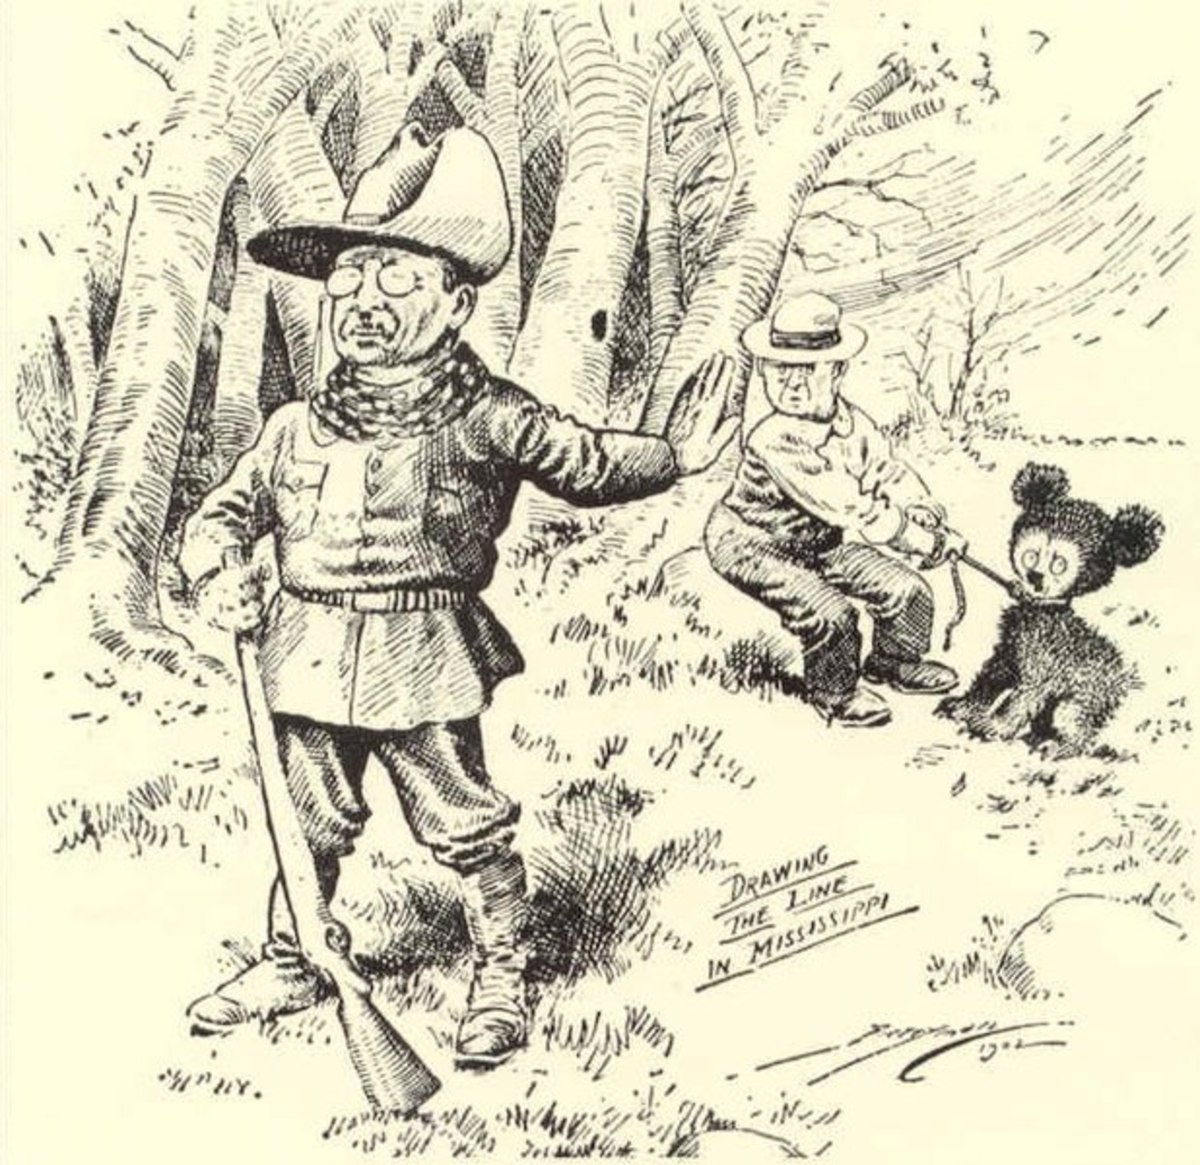 """This political cartoon by Clifford Berryman's depicts President Theodore Roosevelt's bear hunting trip to Mississippi. The cartoon gave the """"'Teddy"""" Bear it's name. It was published in the Washington Post in 1902."""